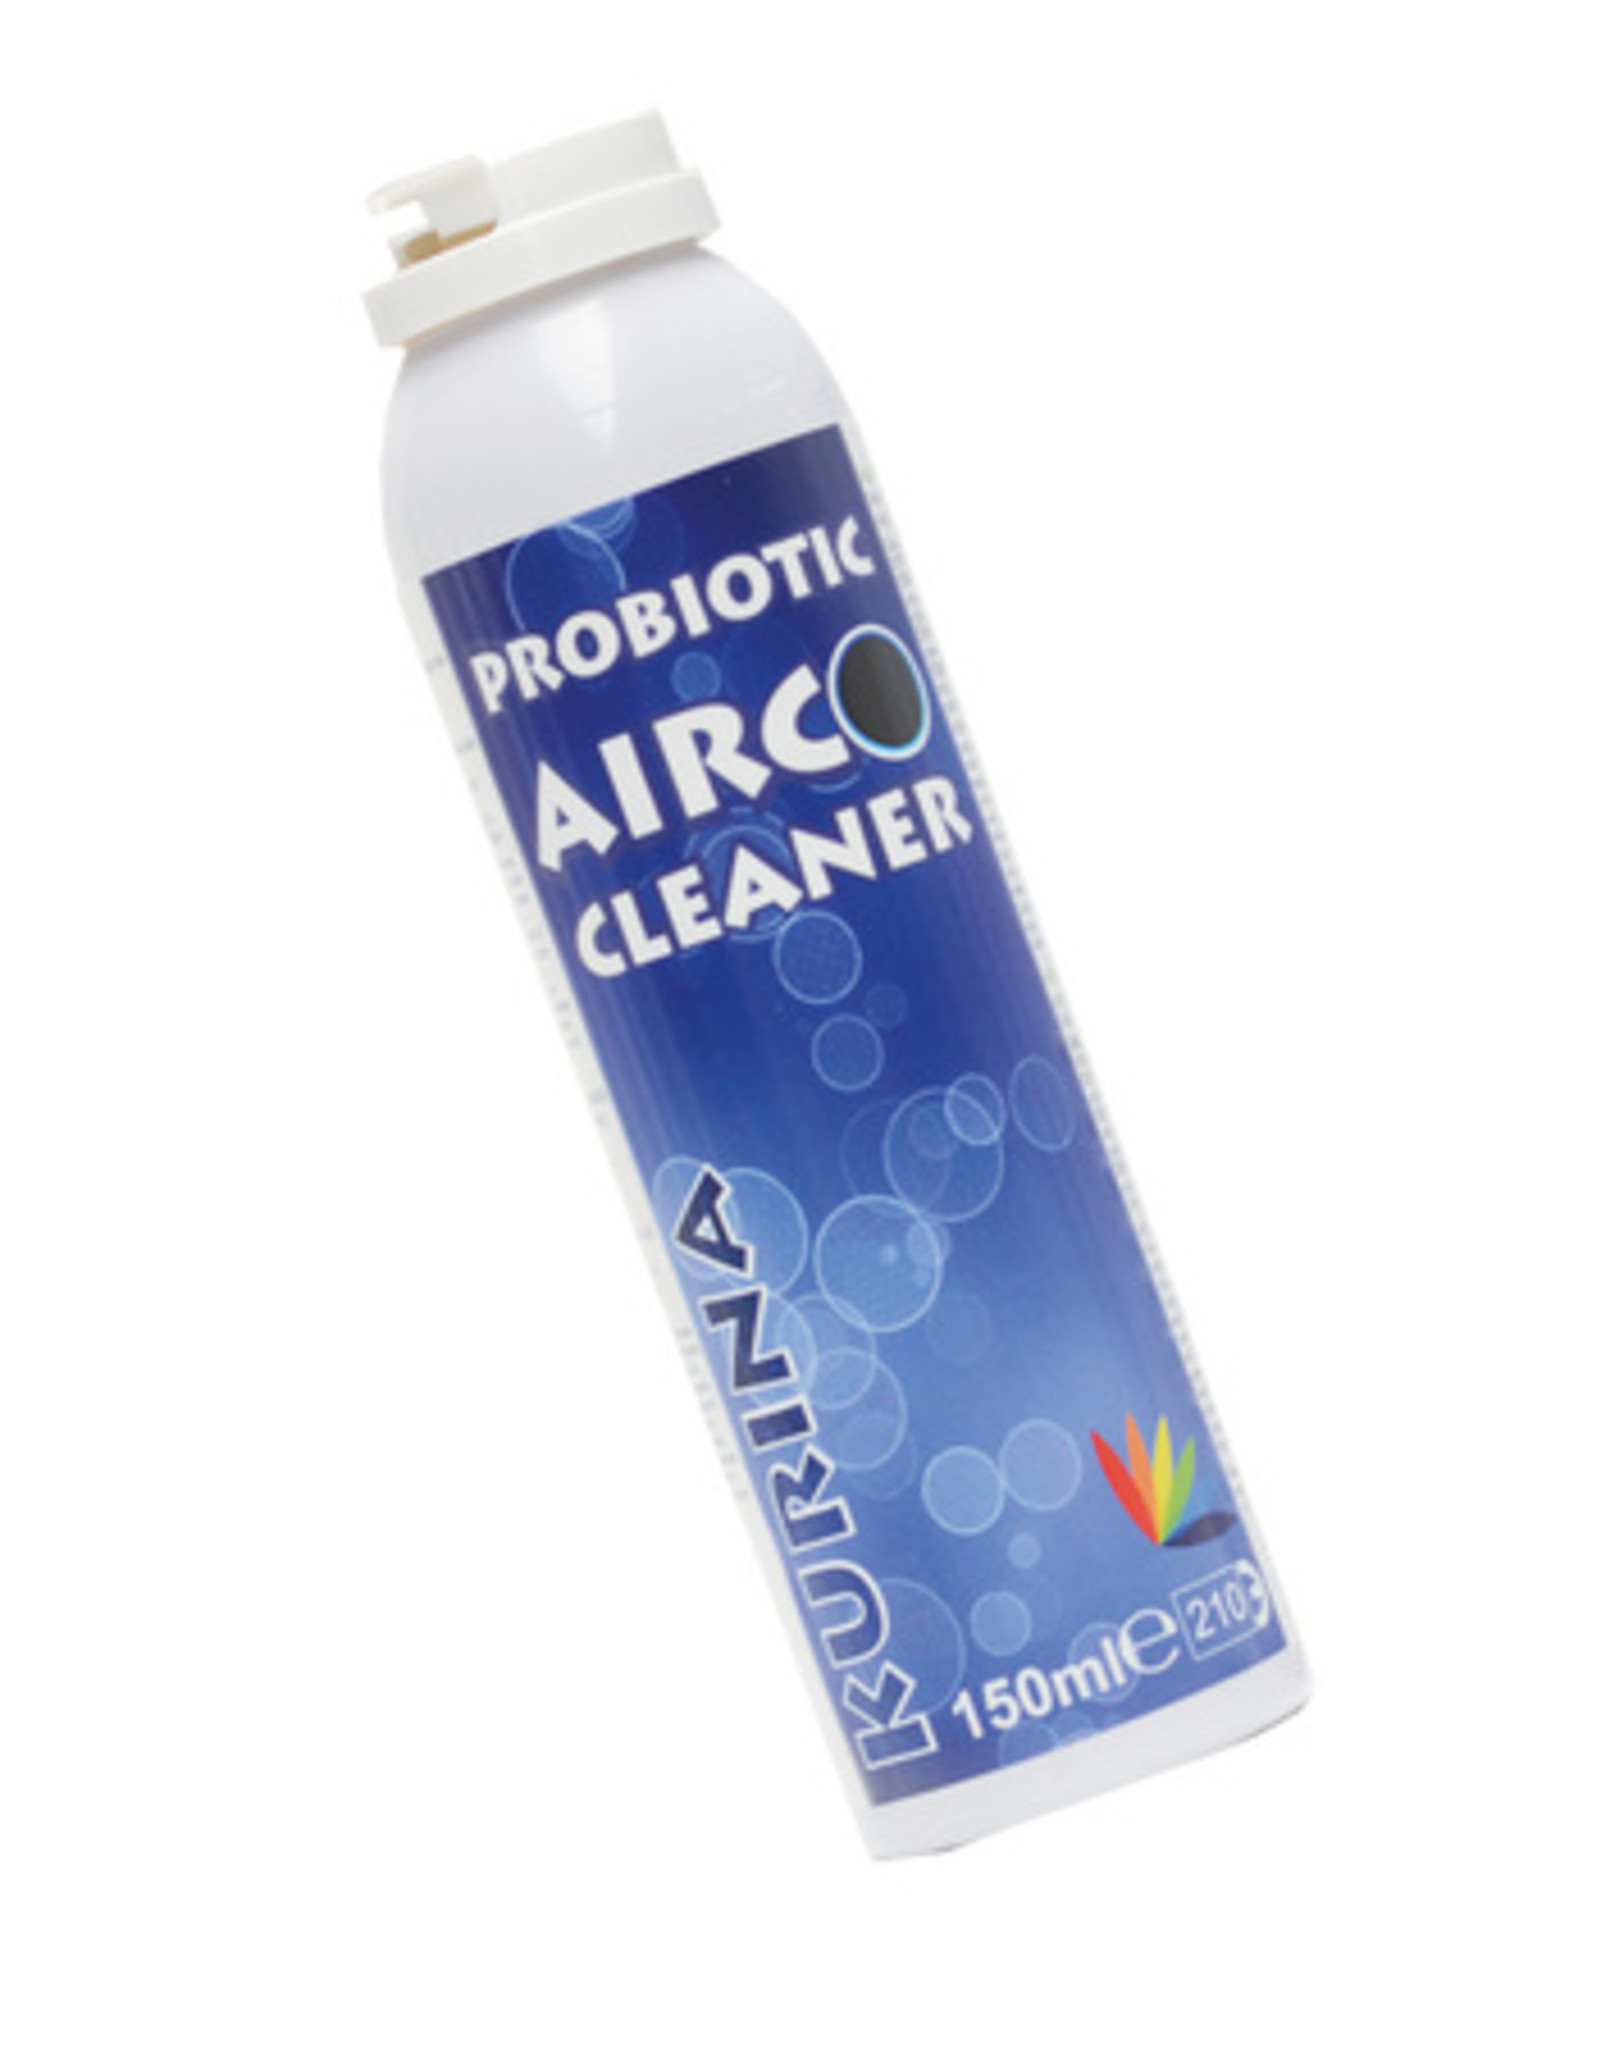 Chrisal Kurina Probiotic Airco Cleaner